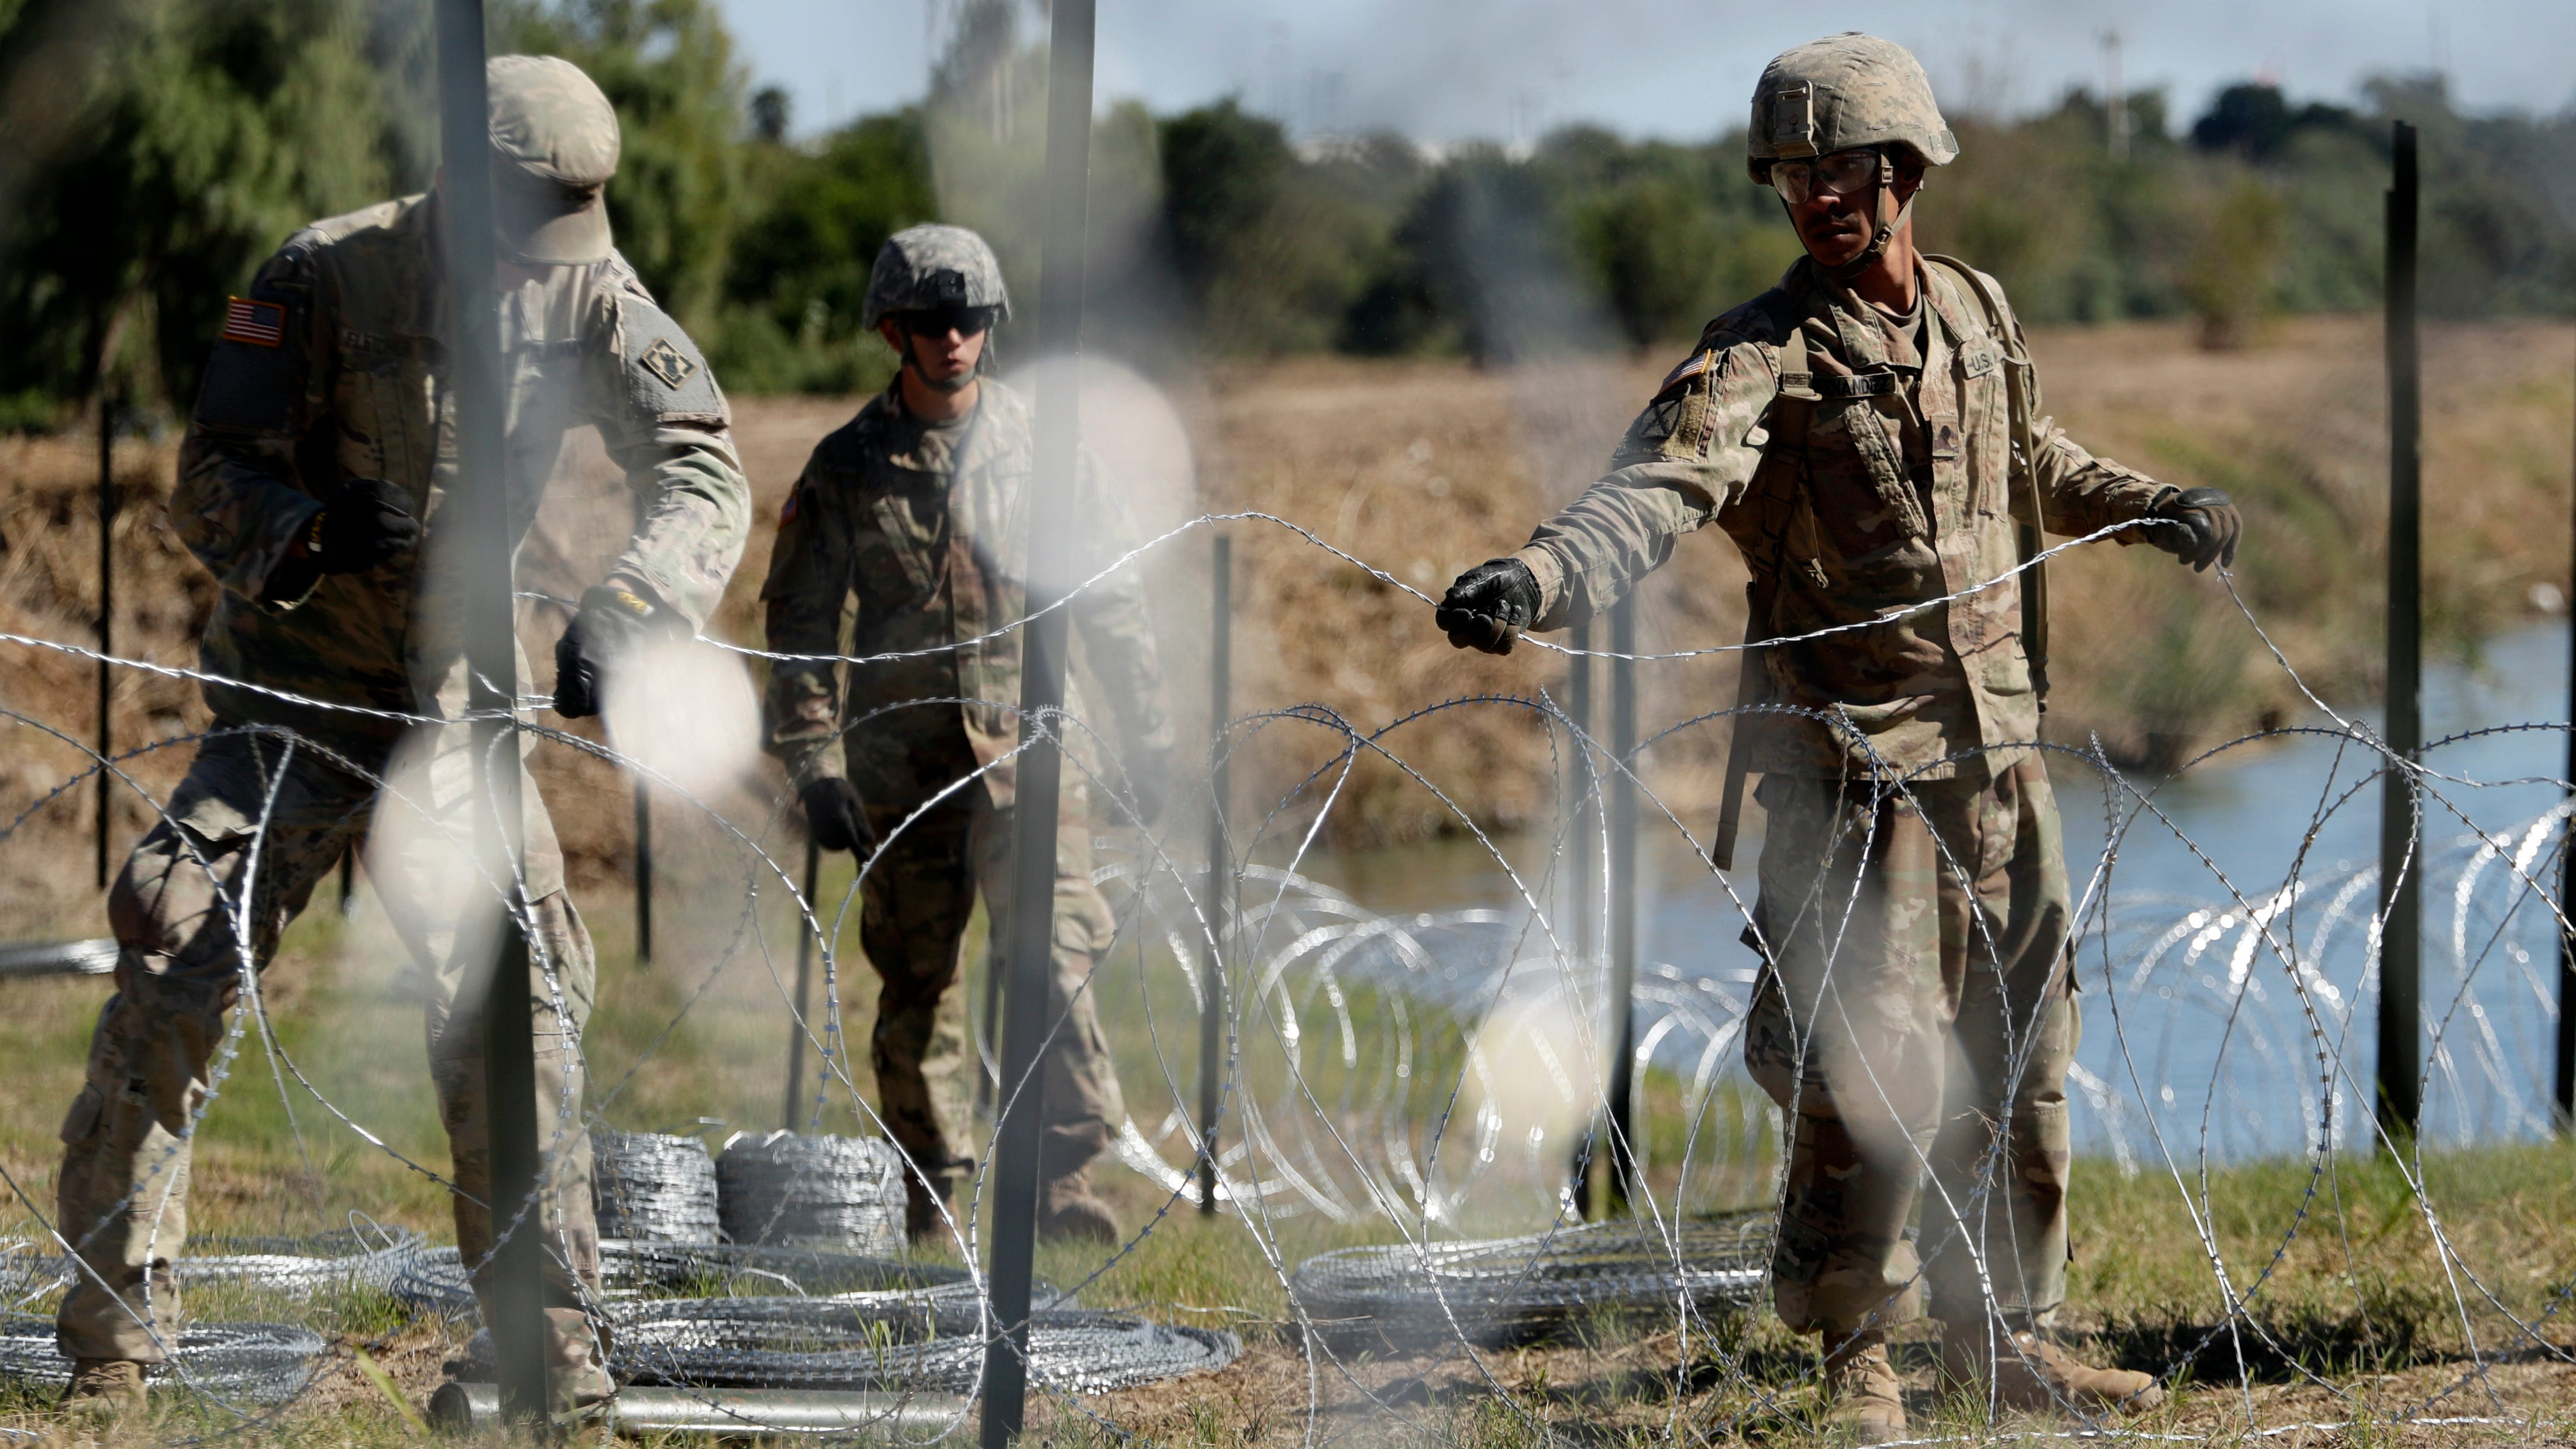 Members of the U.S. military install multiple tiers of concertina wire along the banks of the Rio Grande near the Juarez-Lincoln Bridge at the U.S.-Mexico border in Laredo, Texas.